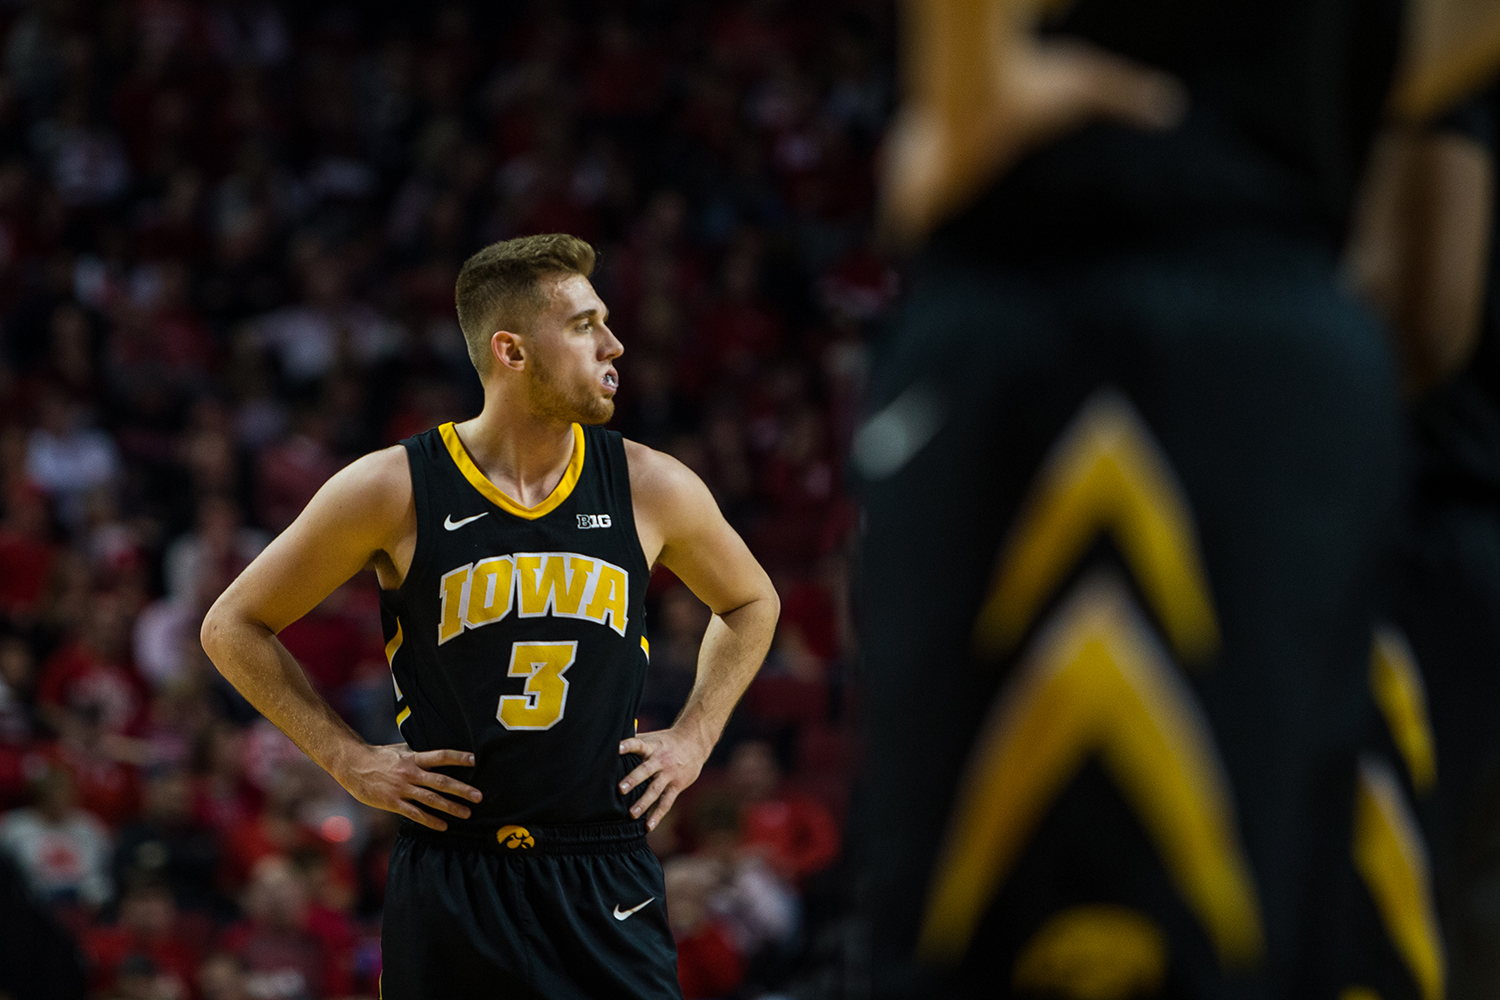 Iowa Guard Jordan Bohannon #3  looks toward the bench during a mens basketball game between the Iowa Hawkeyes and the Nebraska Huskers at Pinnacle Bank Arena on Sunday, March 10, 2019. The Hawkeyes fell in overtime to the Huskers, 93-91.